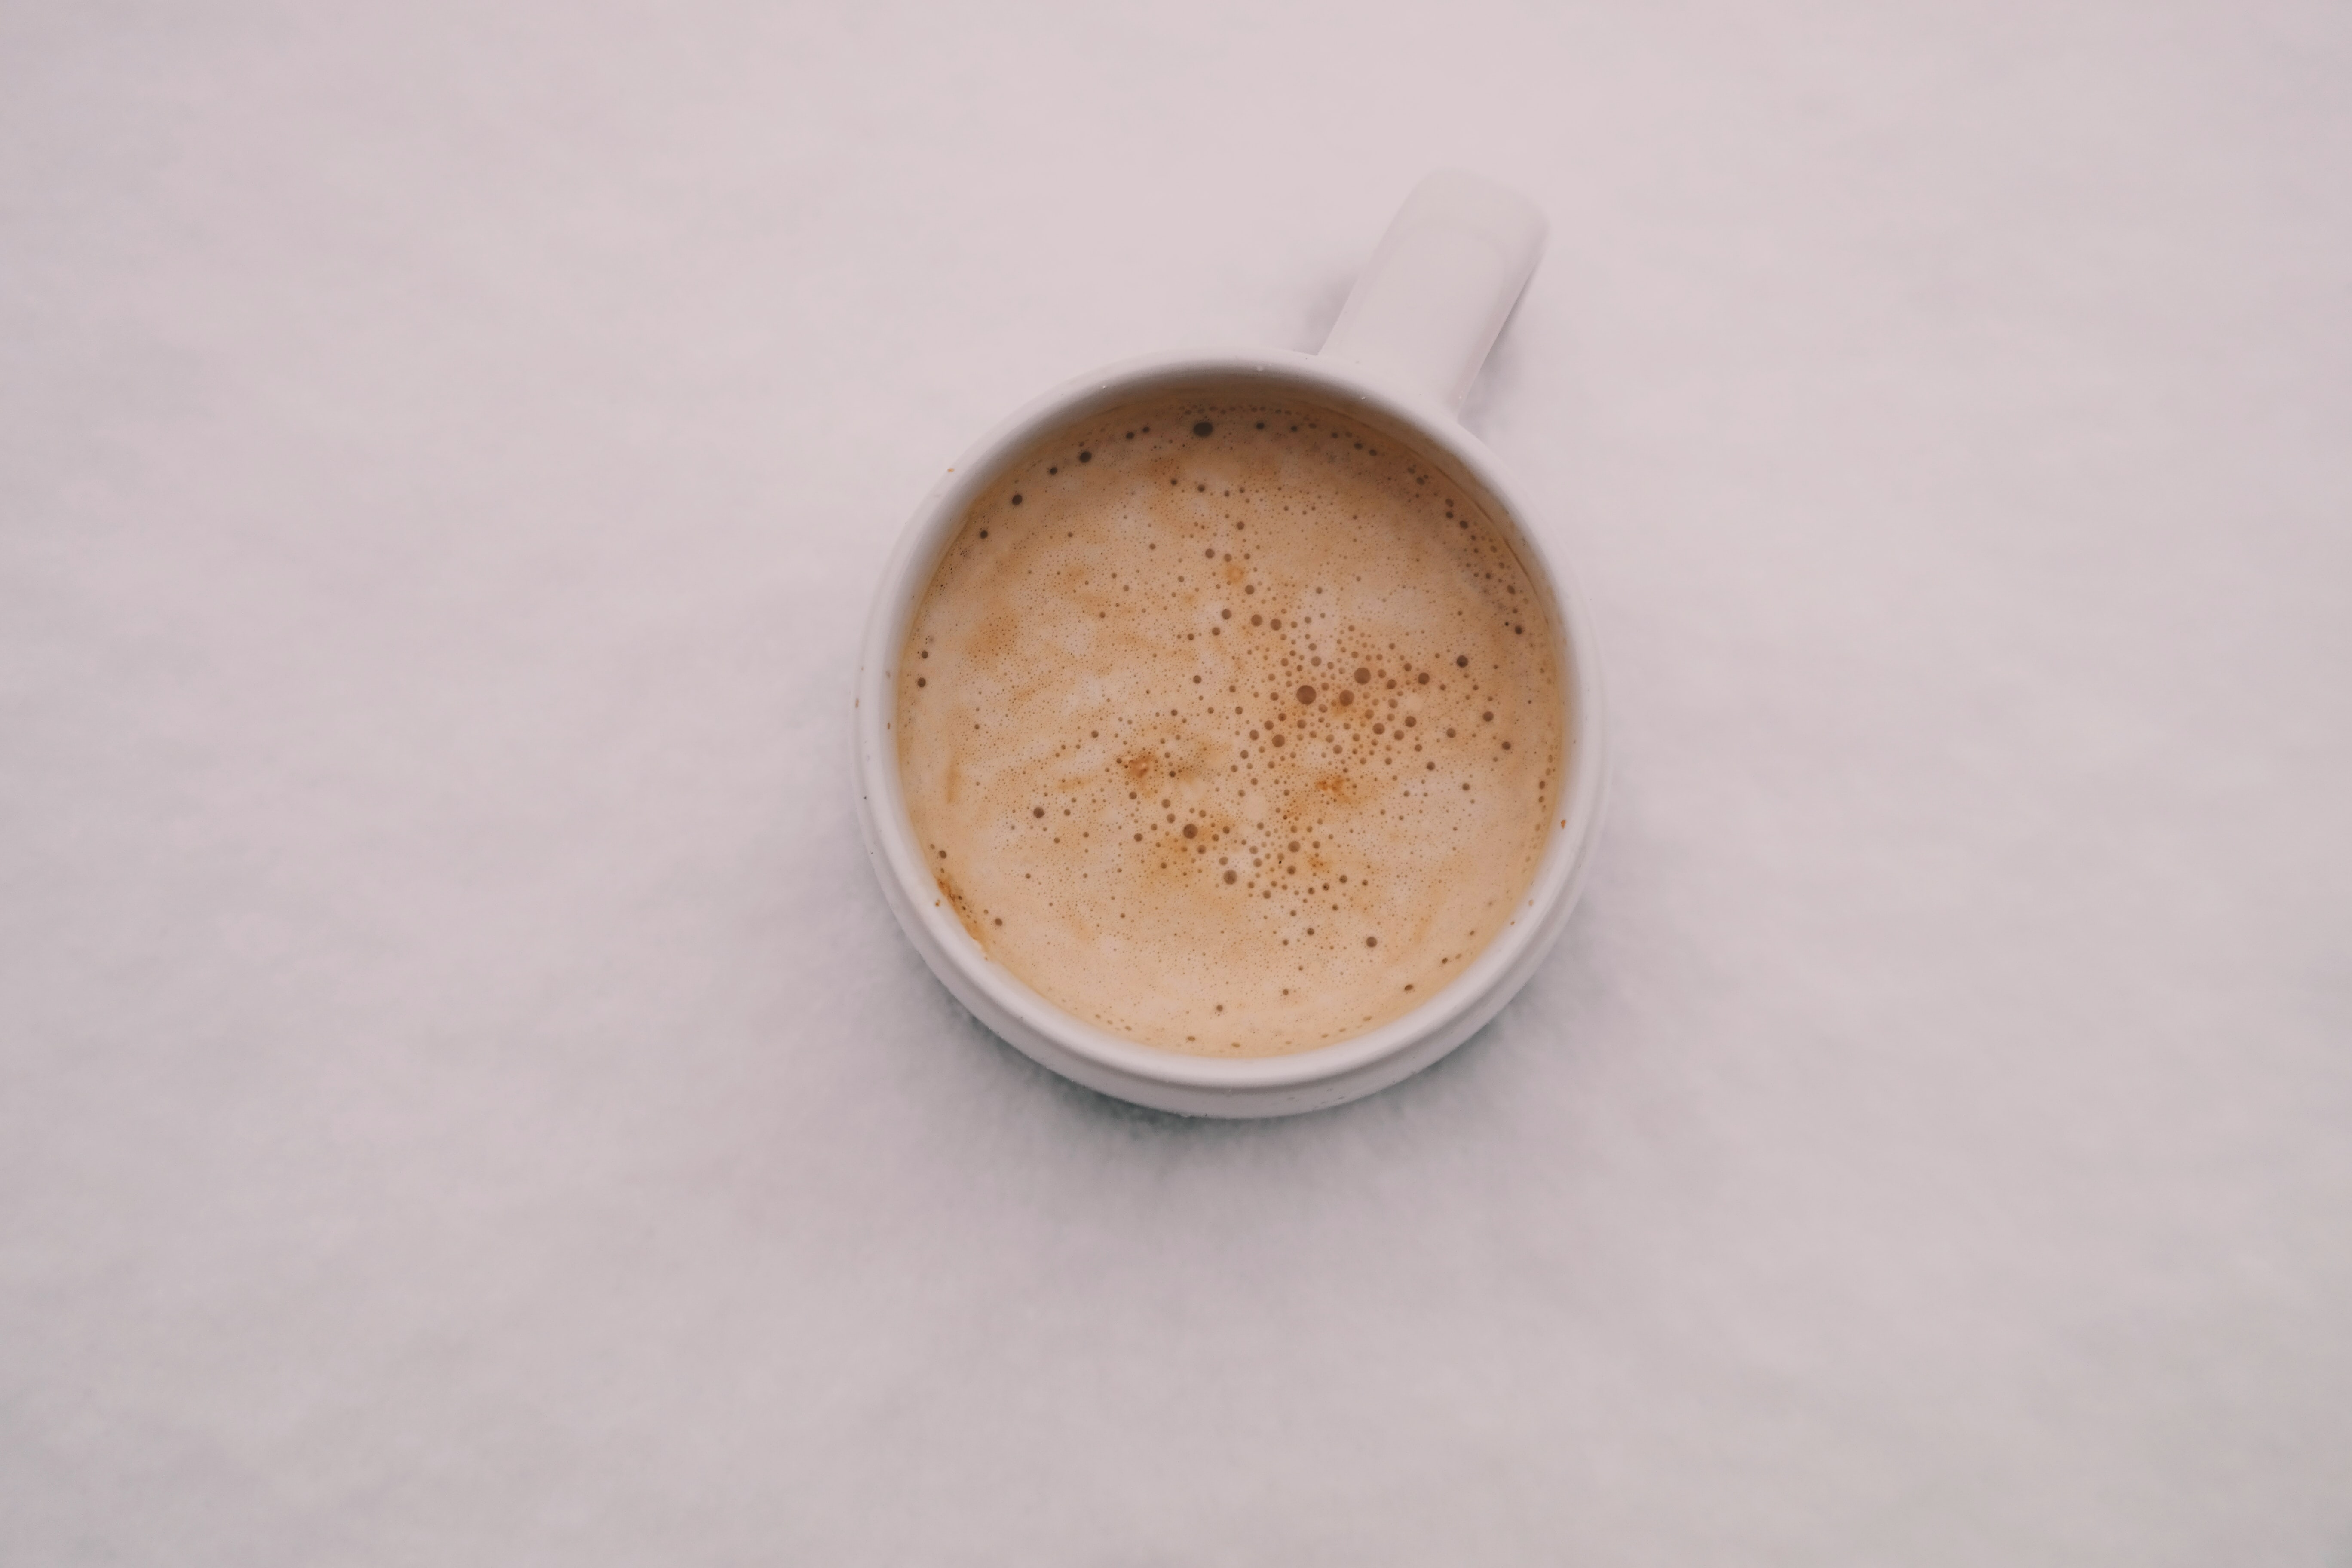 white cup with beverage